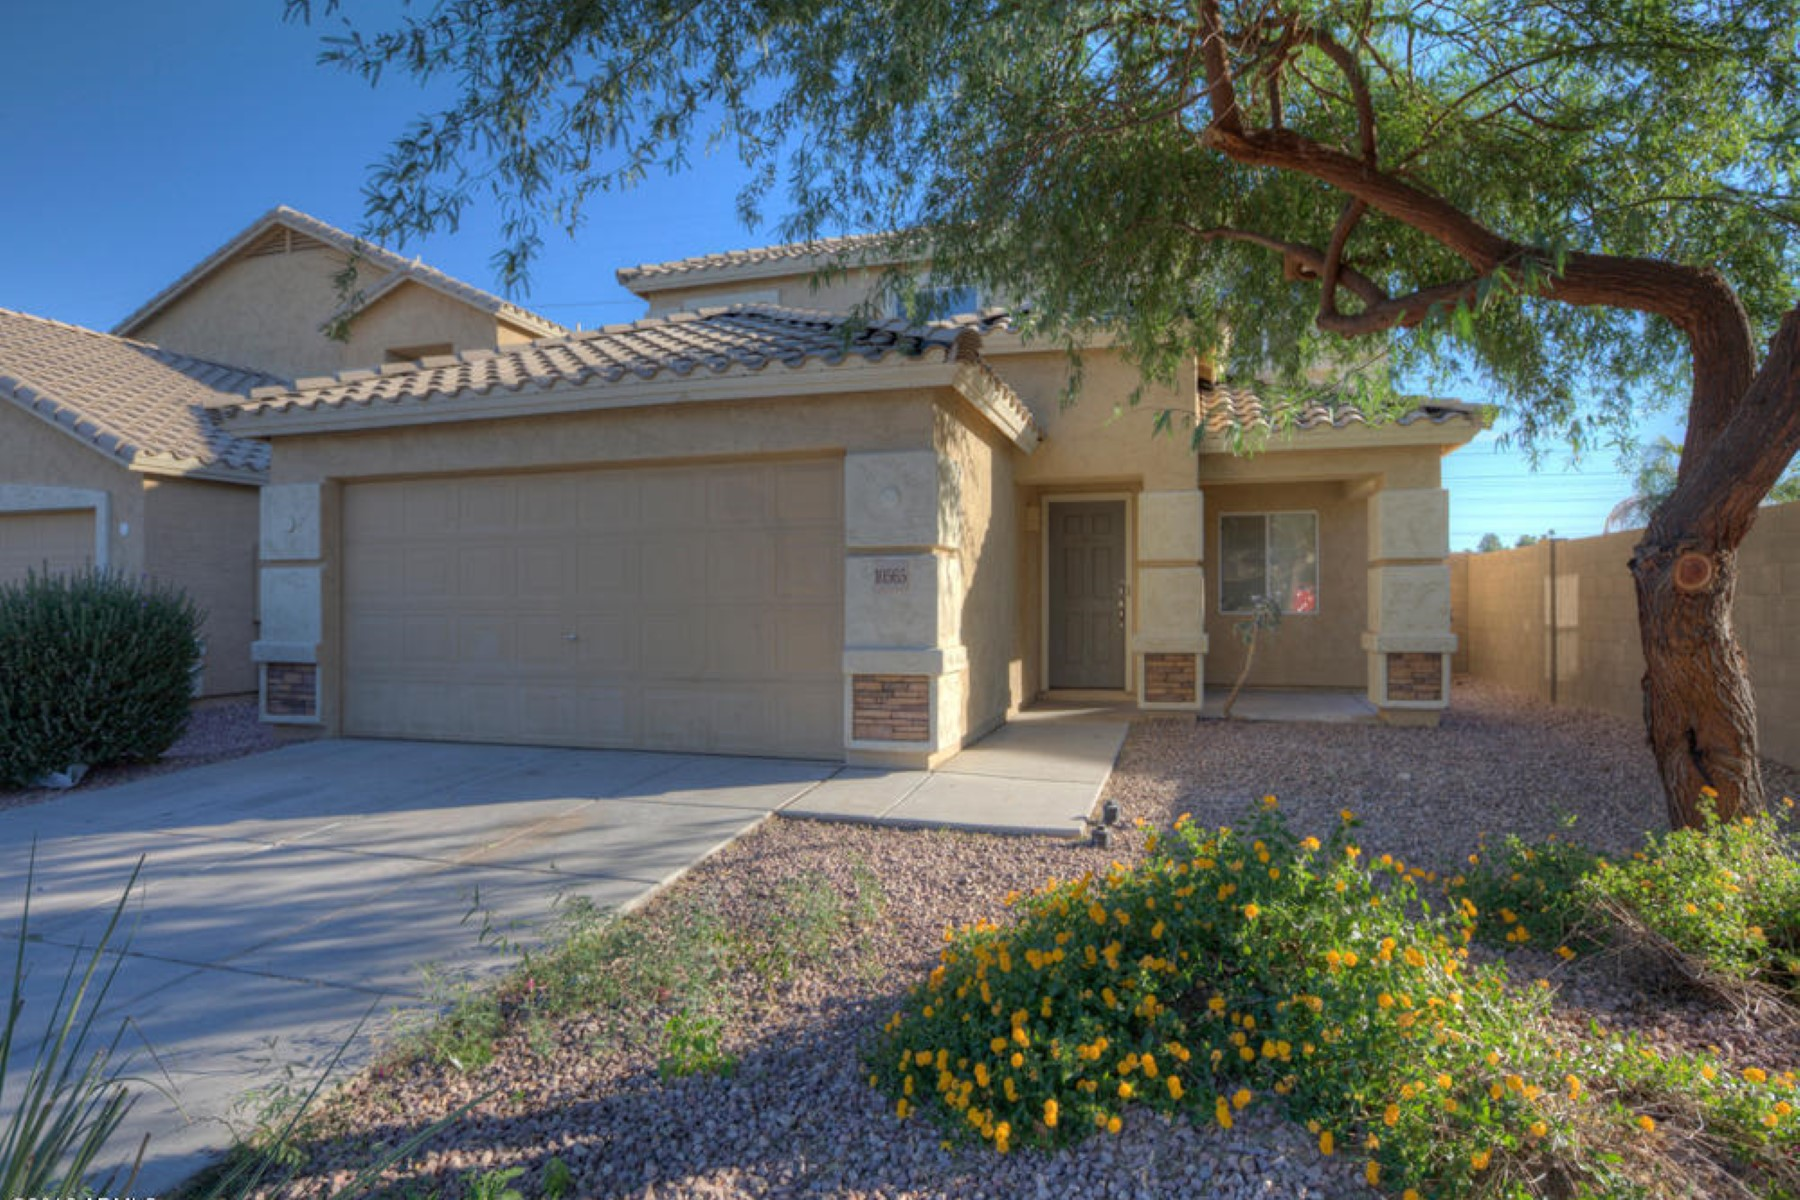 10565 N 115th Dr, Youngtown, AZ 85363